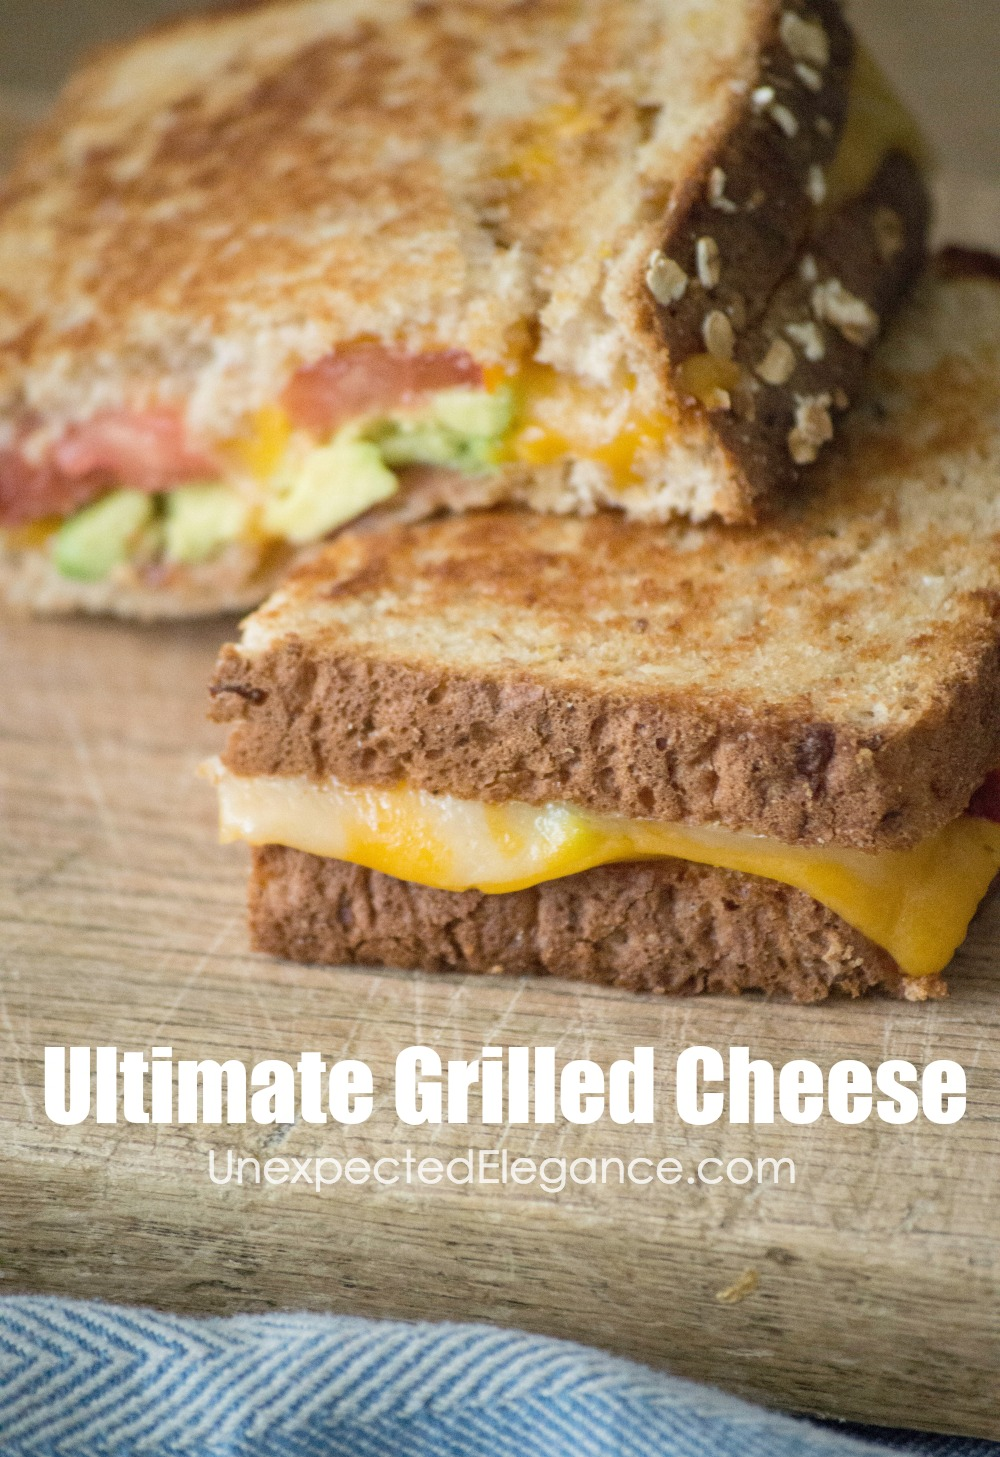 A super easy and fun take on the traditional grilled cheese sandwich! Step by step instructions for how to assemble this delicious ULTIMATE GRILLED CHEESE!!